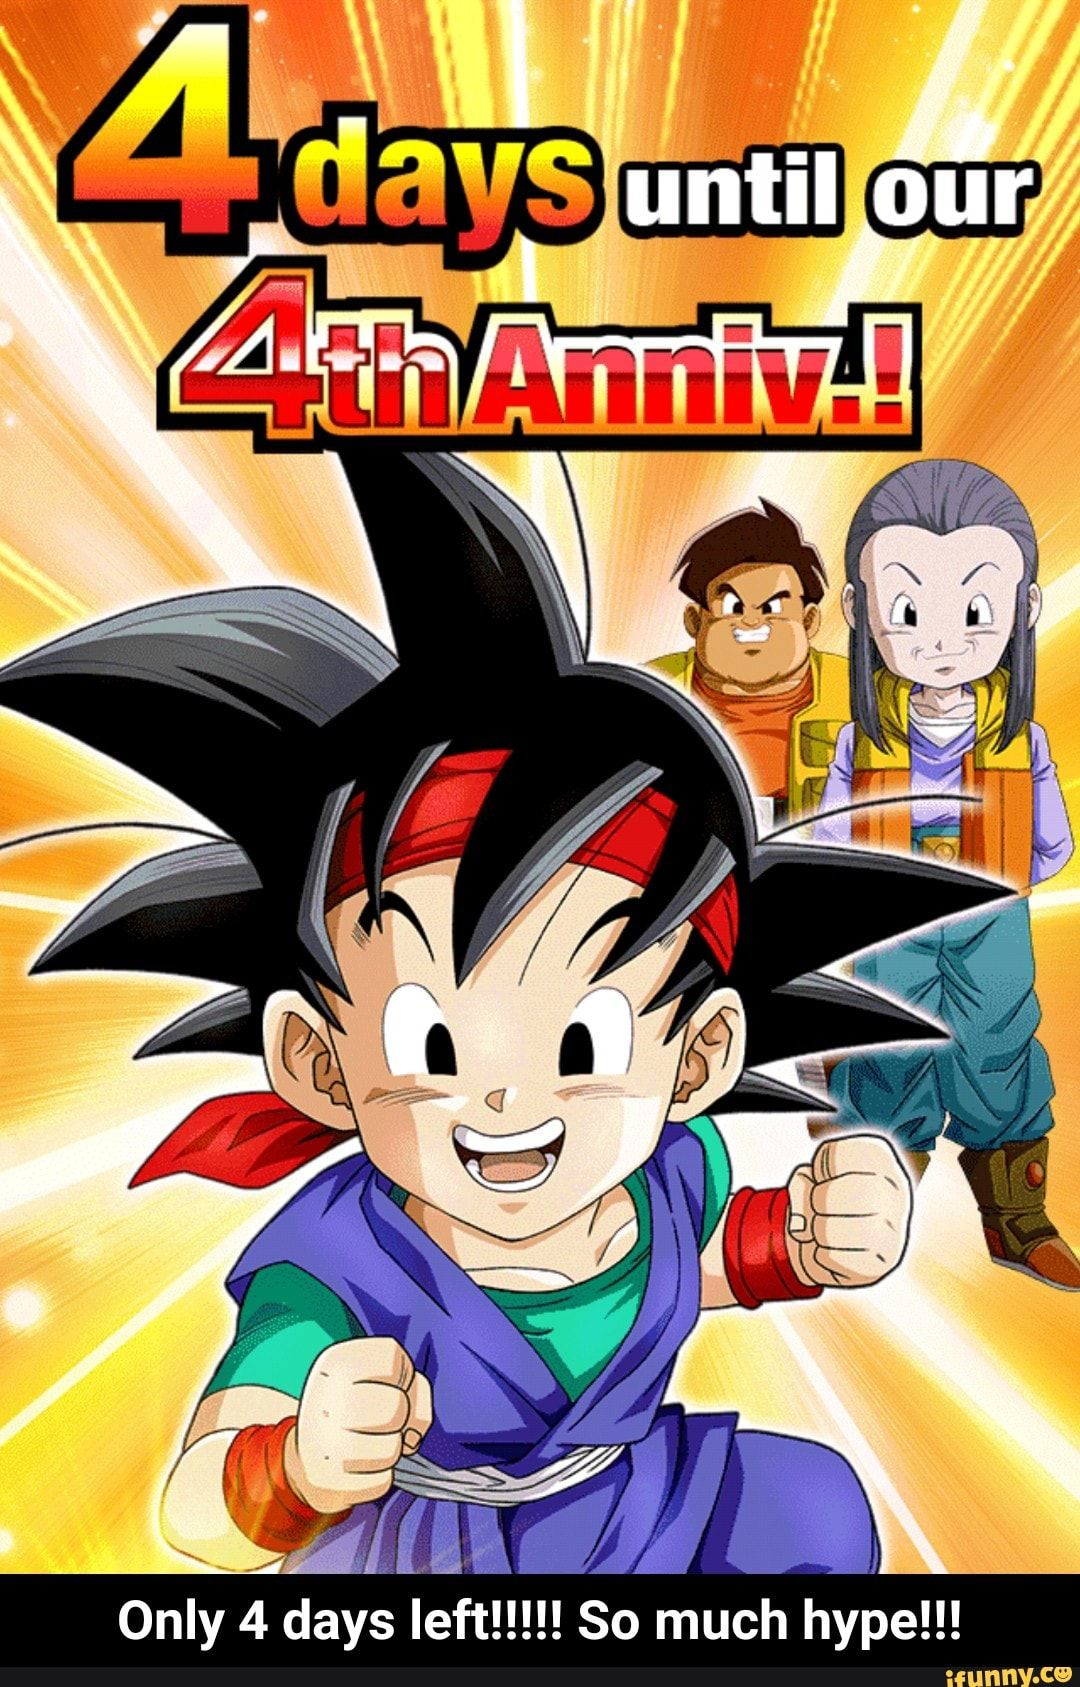 Only 4 Days Left So Much Hype Ifunny Memes Ifunny Dragon Ball Z